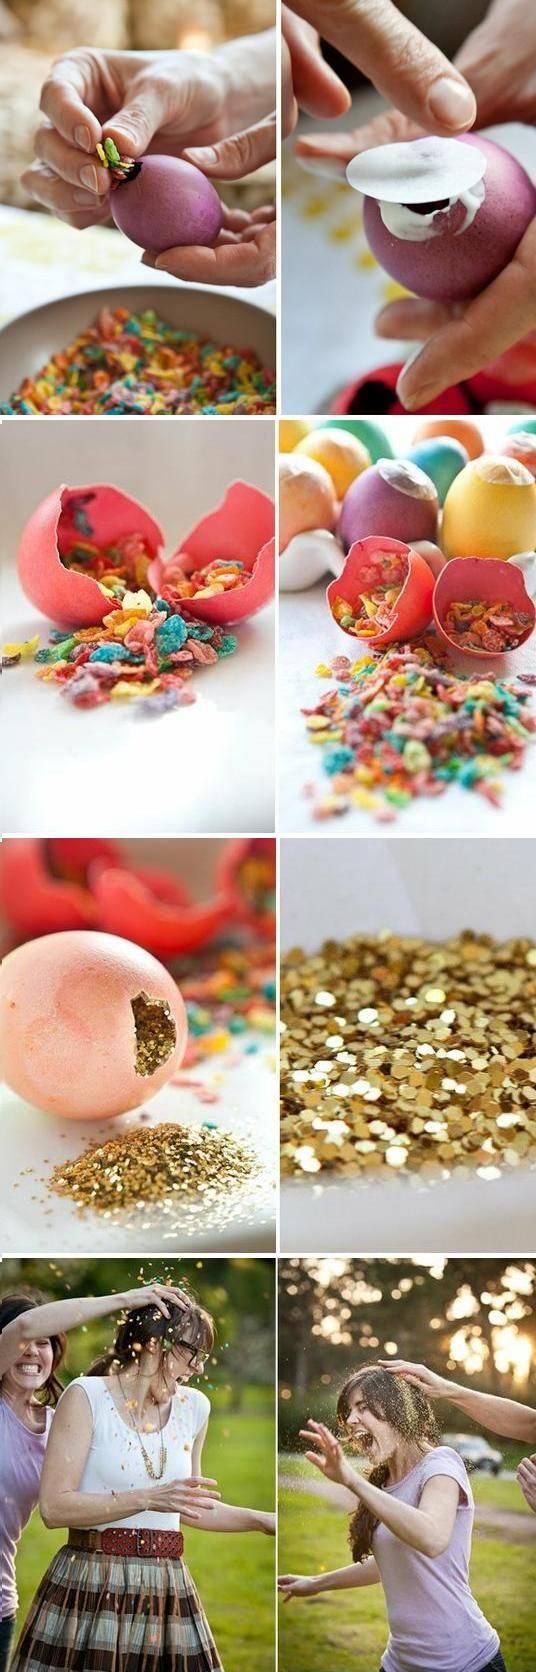 DIY Party: Confetti Egg Game. Post is by Rebecca Wright.Have fun!